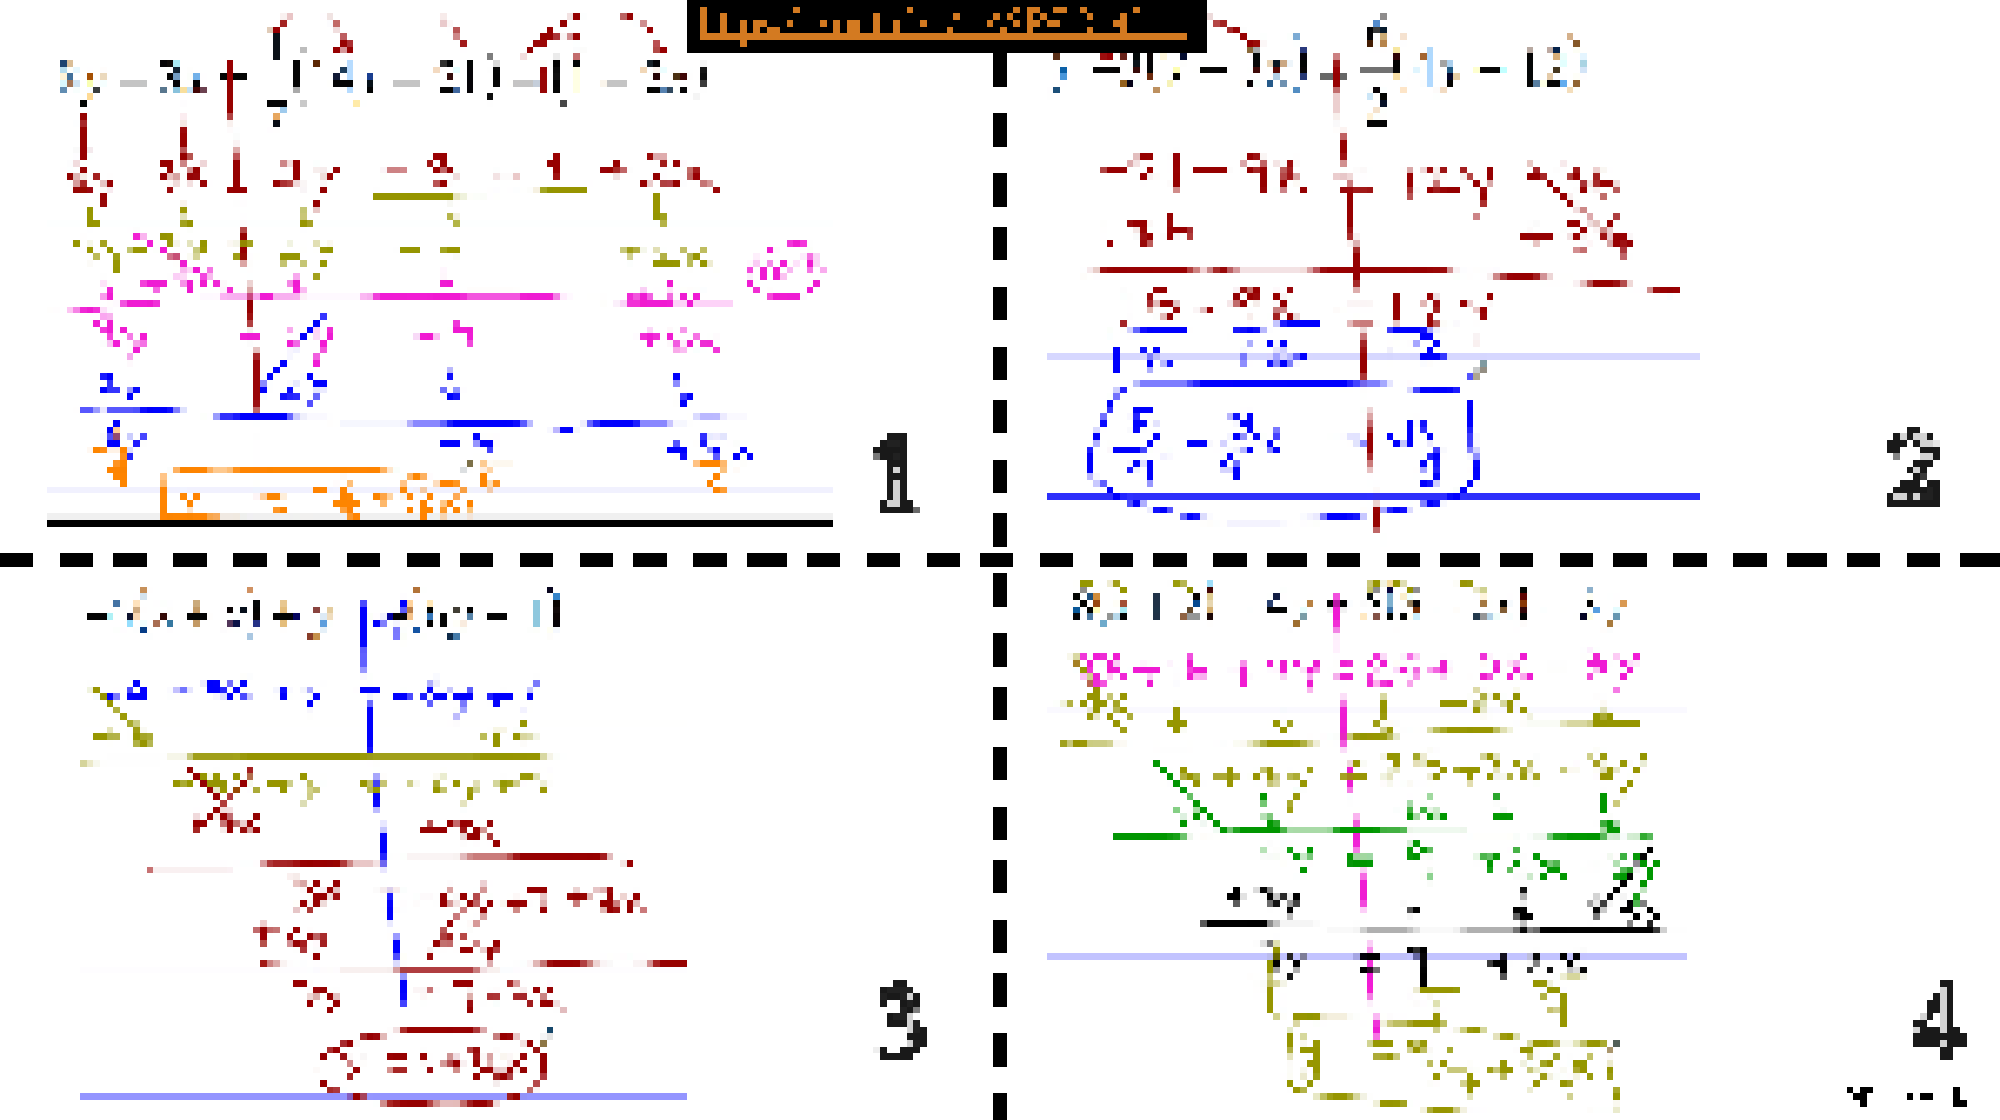 Solution algebra 1 linear equations in slope intercept form with slope intercept formlinear equations advancedtask cards interactive notebooks pierceson leinstructions cut each card out anchor paste them in your falaconquin